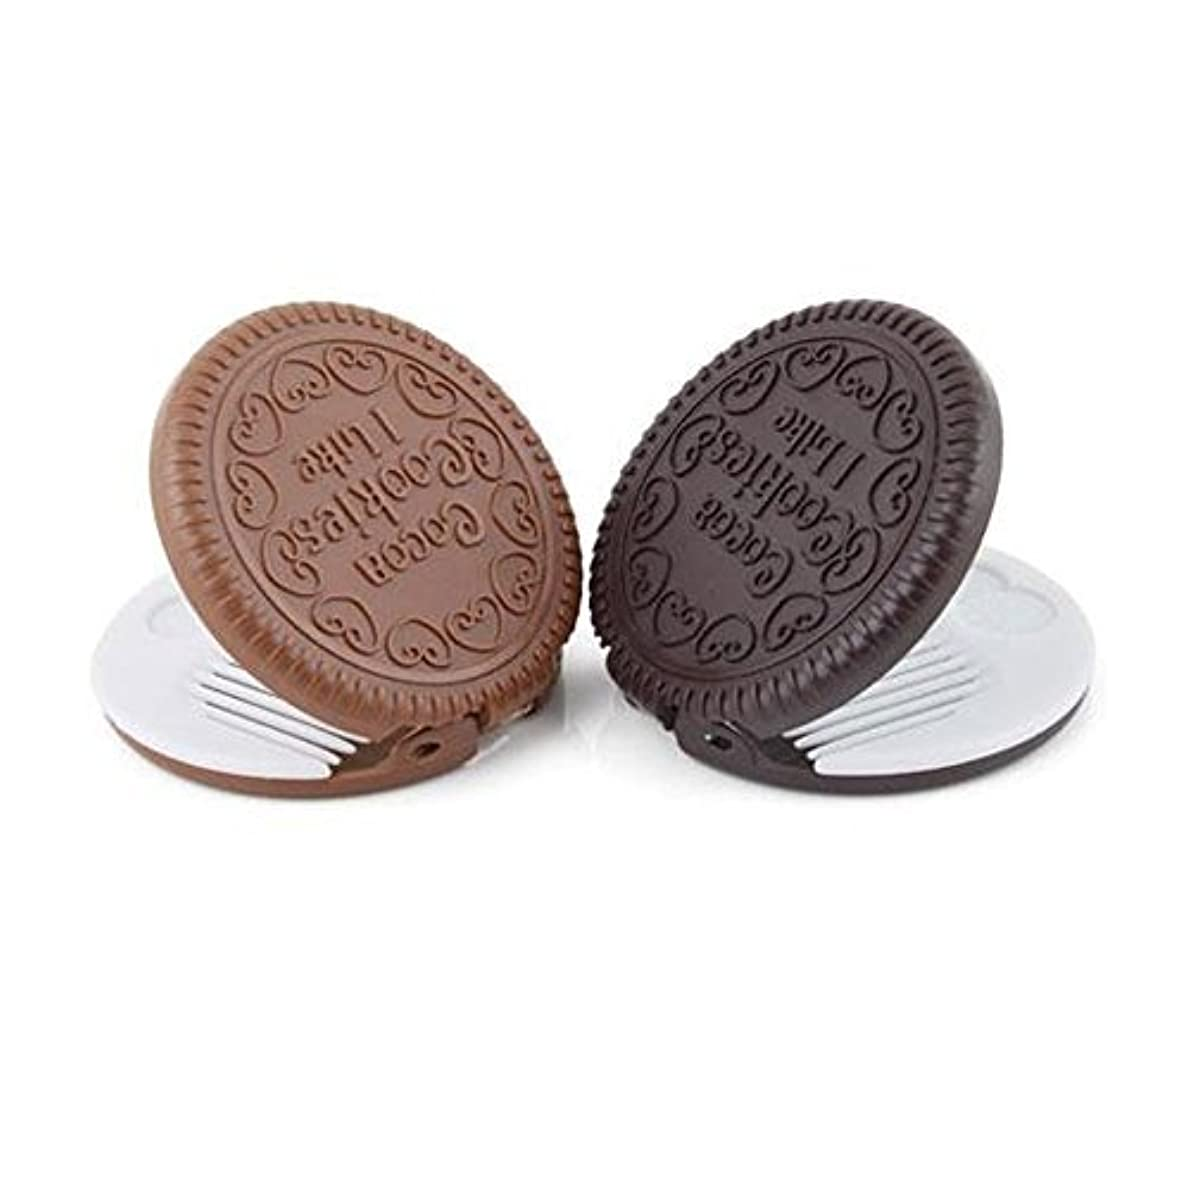 知性アライメント喉が渇いたyueton Pack of 2 Mini Pocket Chocolate Cookie Compact Mirror with Comb [並行輸入品]